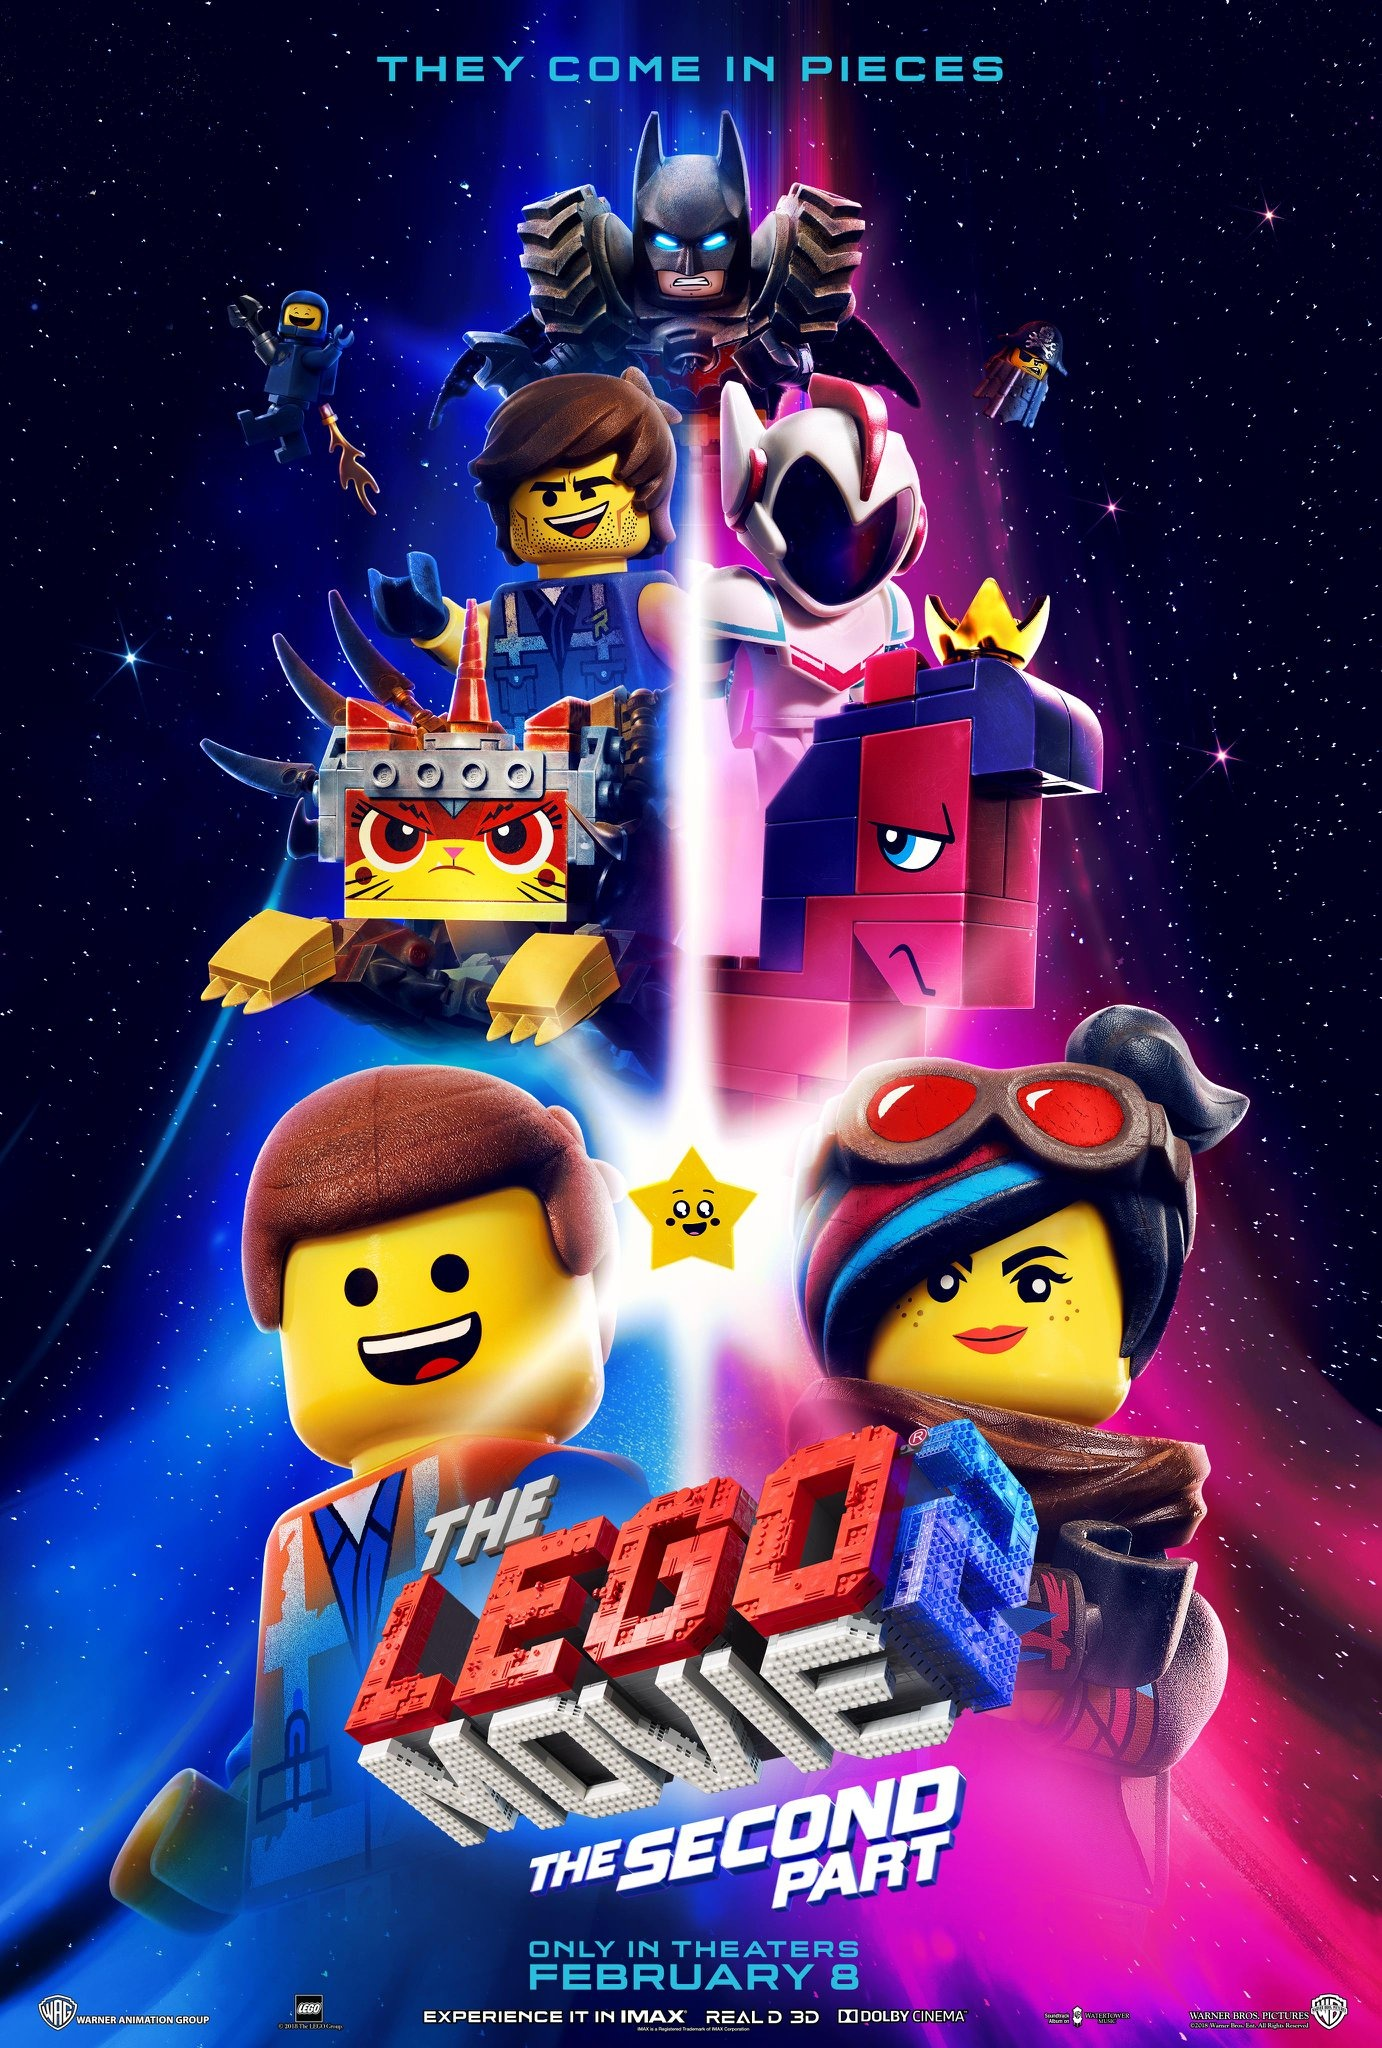 The Second Generation Of Supermodel Is Here Cindy: The LEGO Movie 2: The Second Part